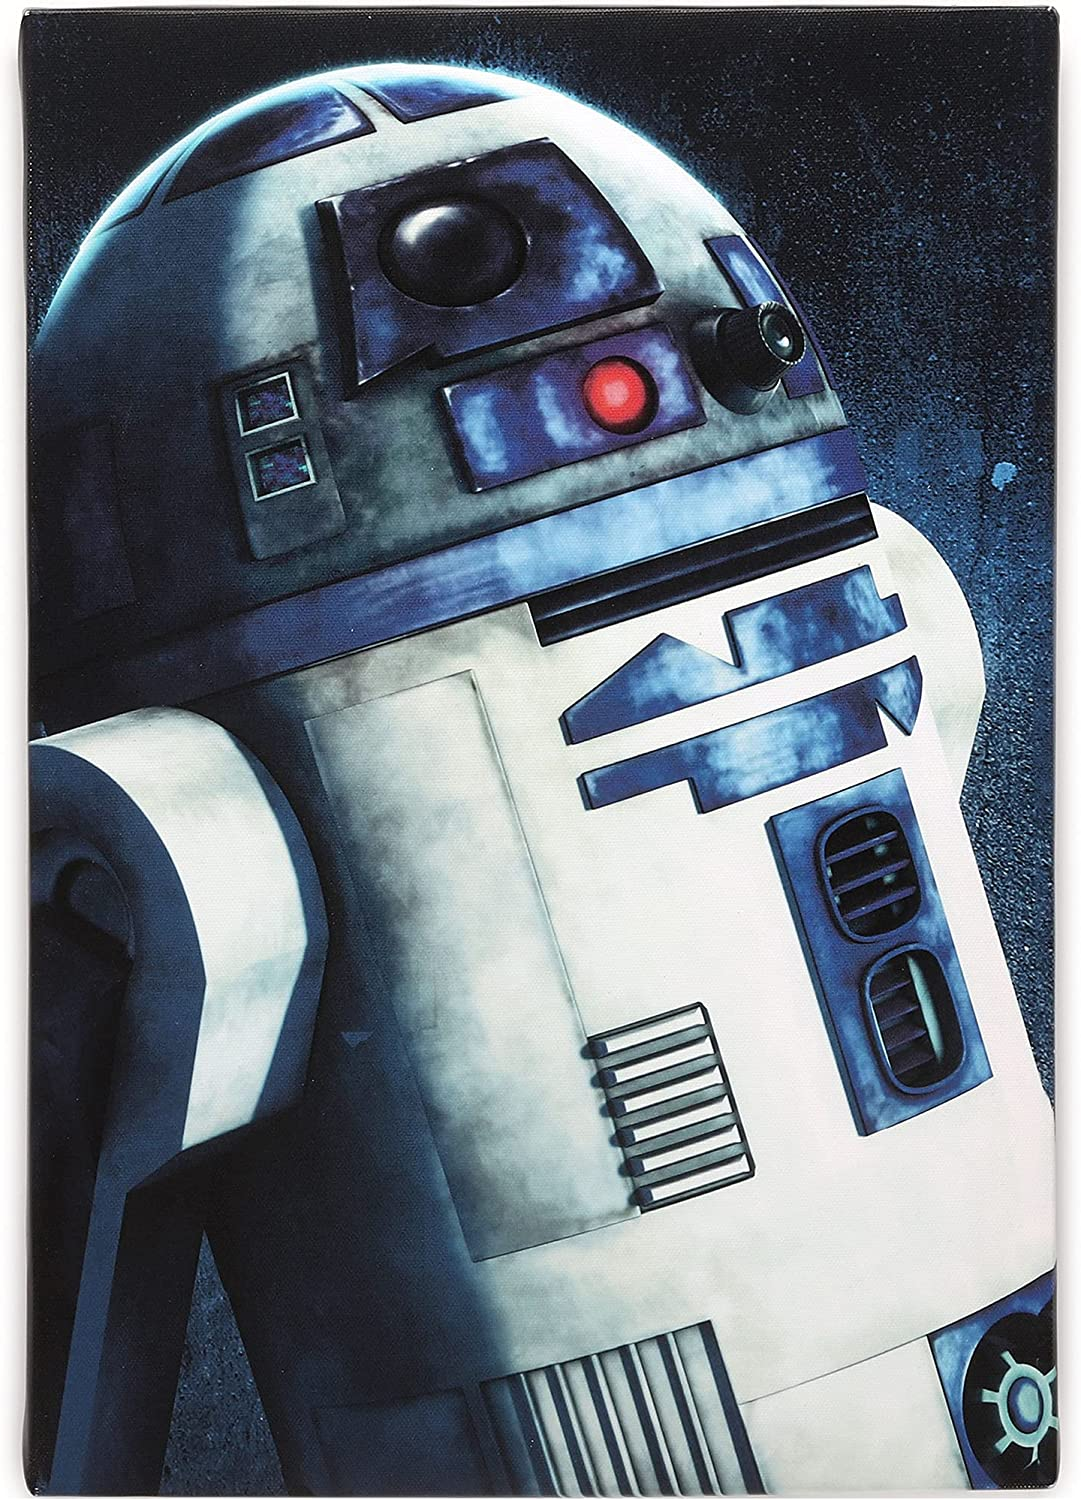 safety Open Limited price Road Brands Disney Star Wars: Wars The Painting Clone R2-D2